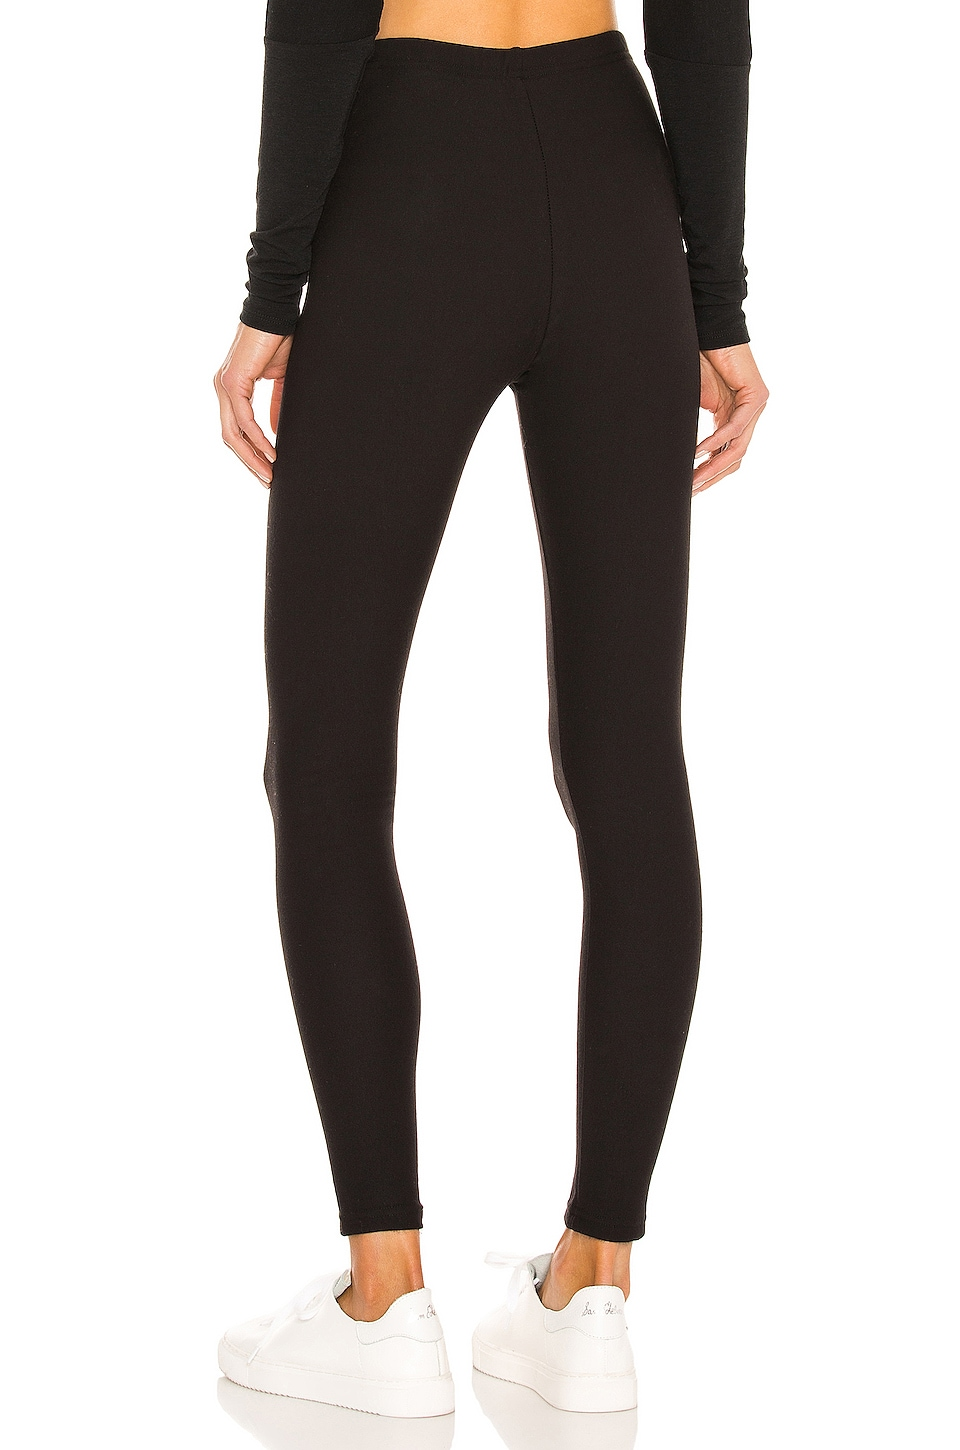 Plush Cotton Fleece Lined Legging in Black